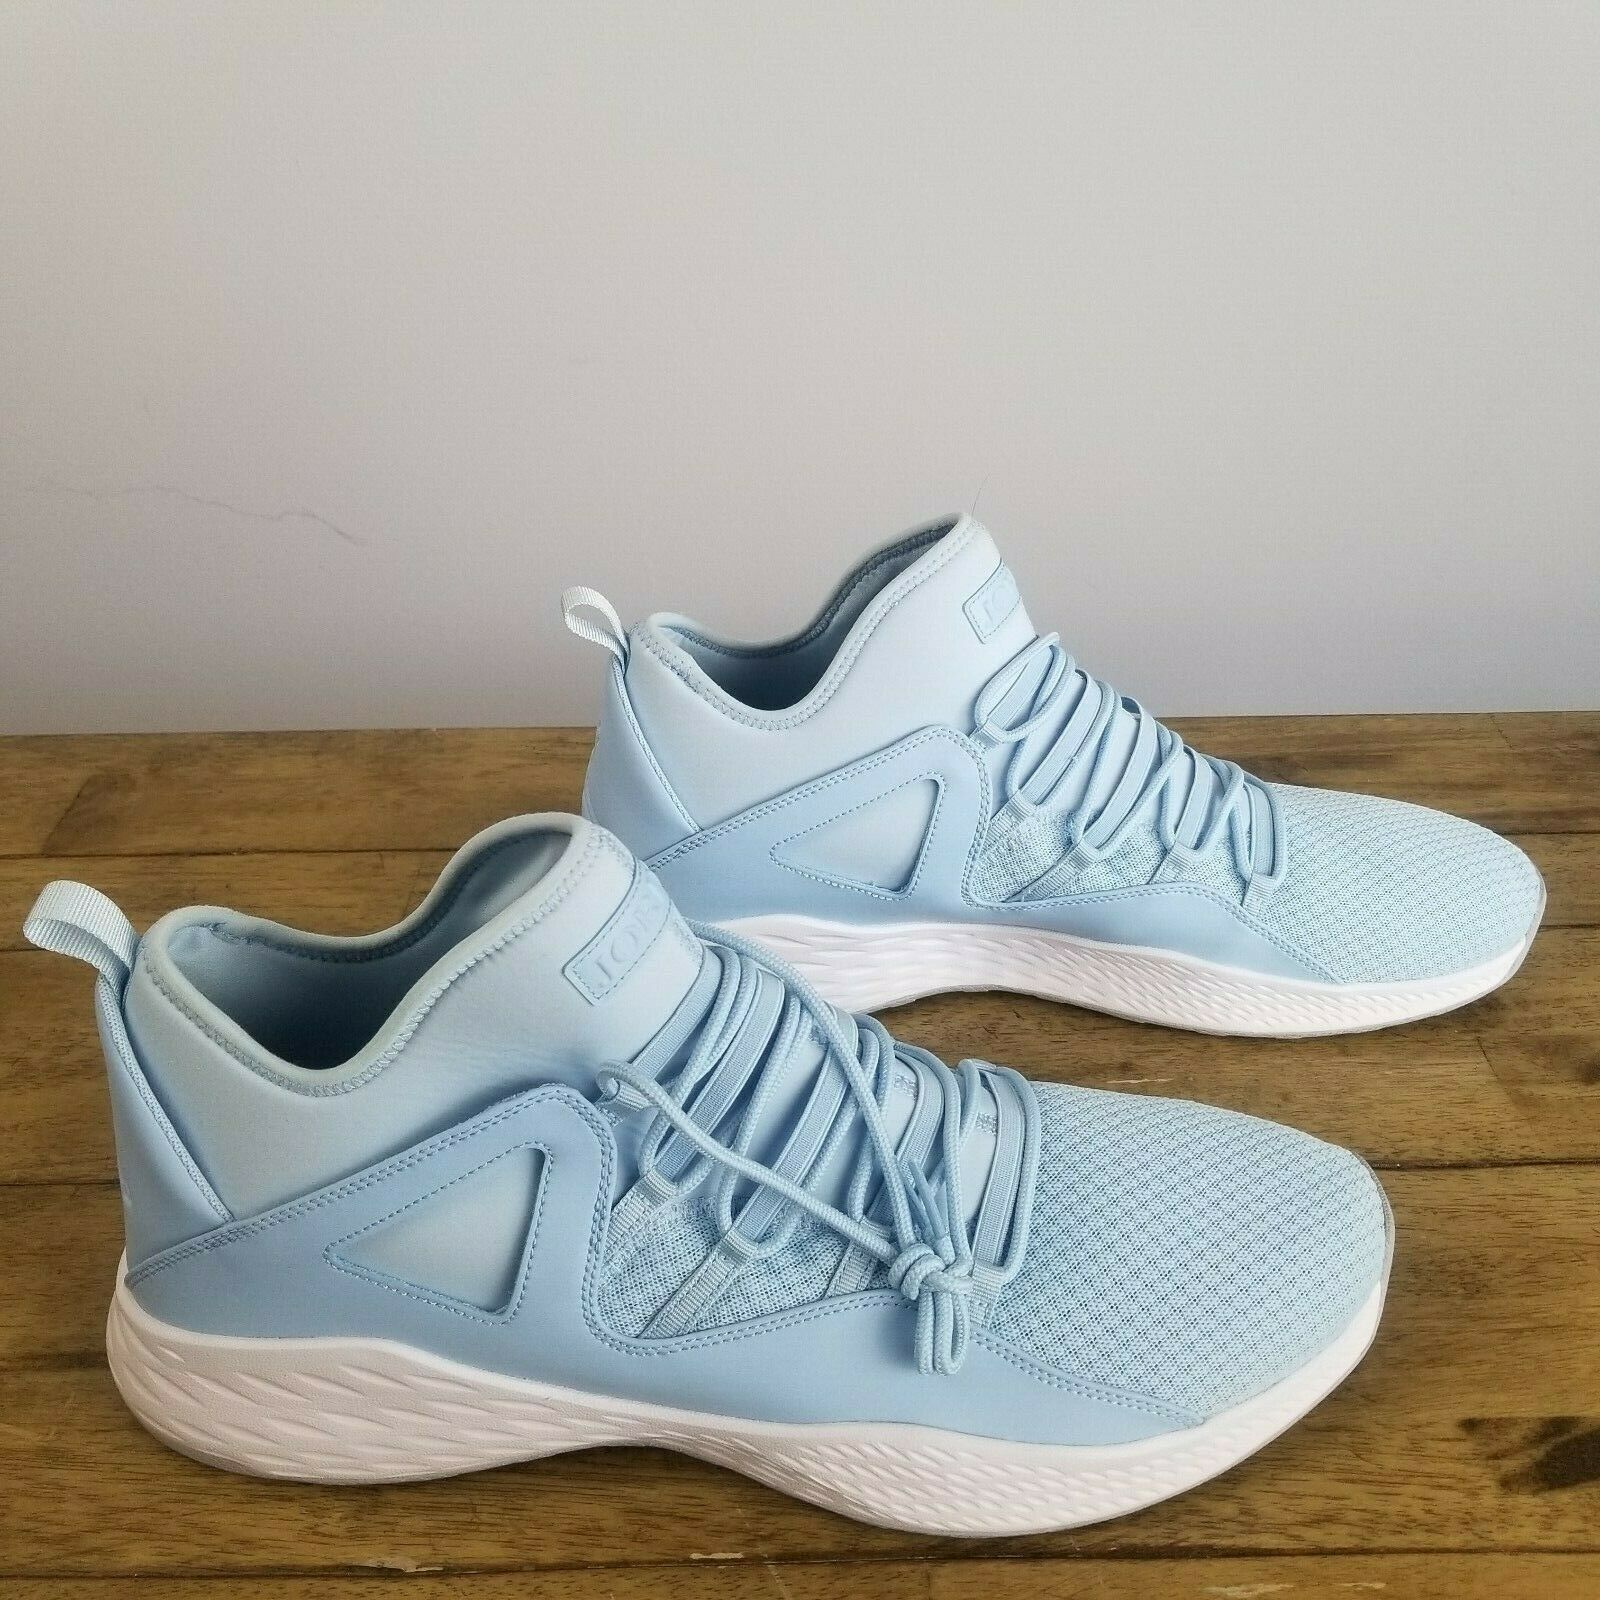 f42b849c49d906 NEW Size 18 Nike Nike Nike Air Jordan Formula 23 shoes Sneakers Basketball  blueee 881465-